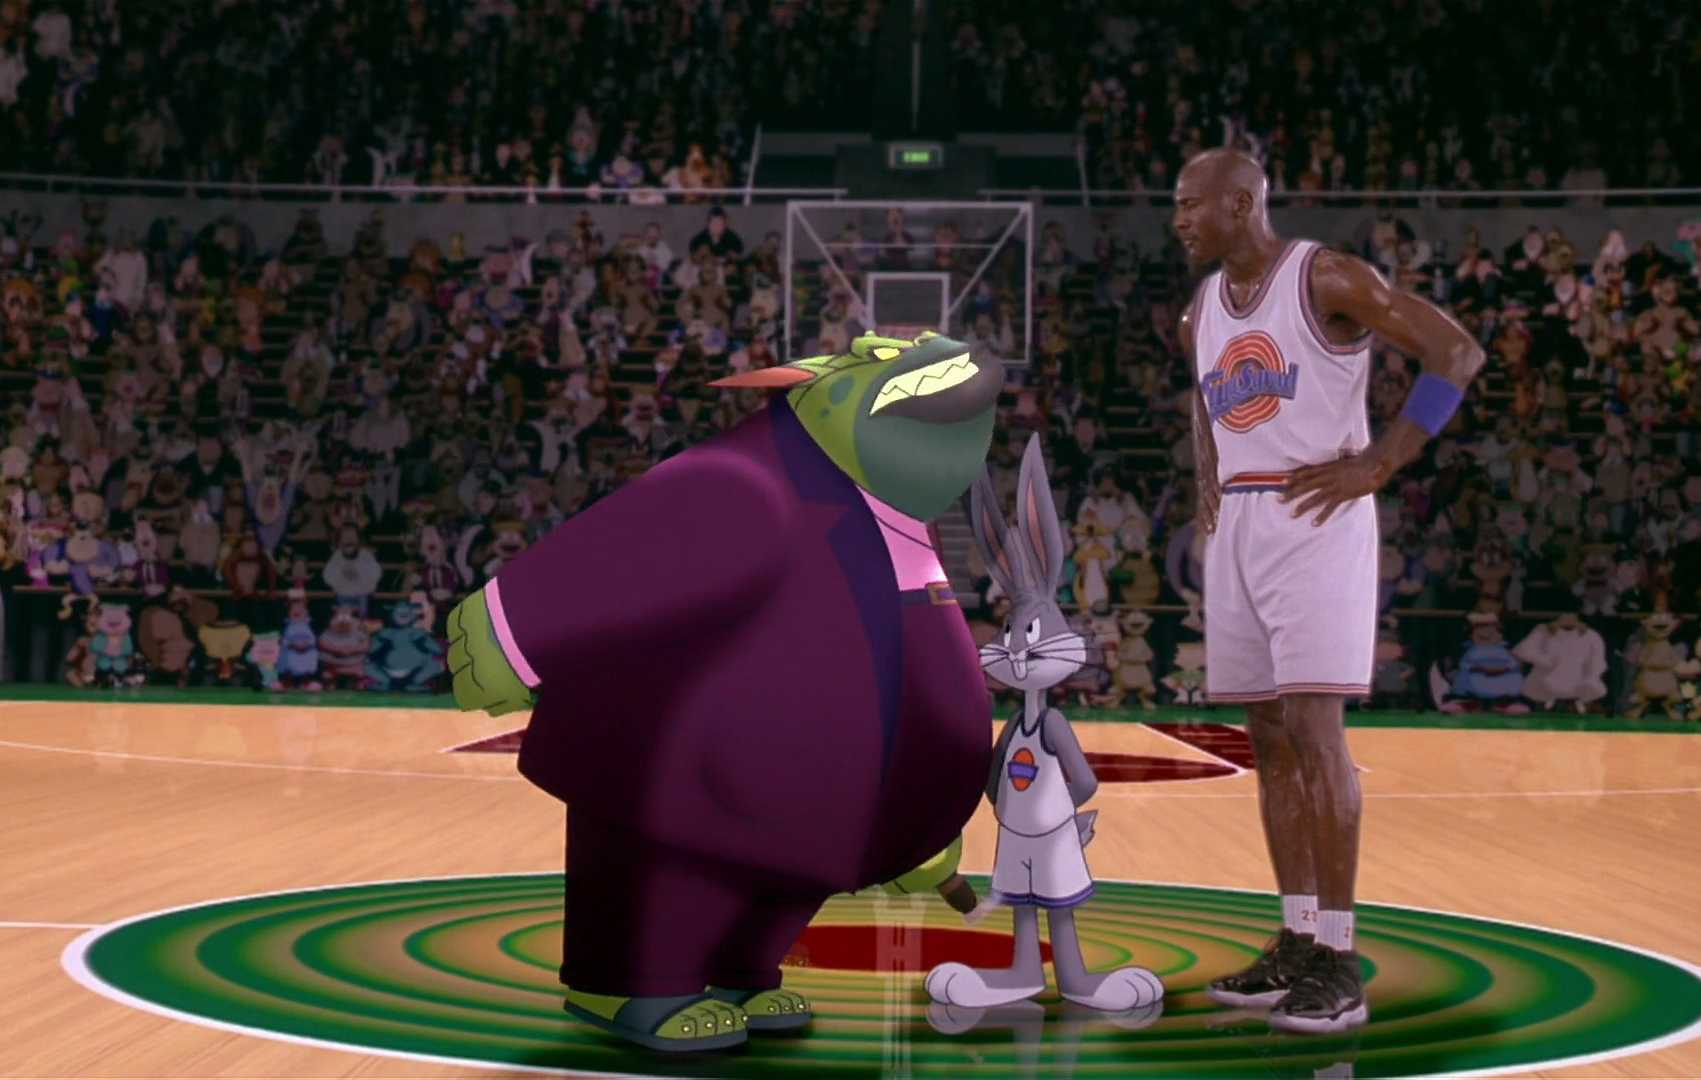 It's Happening: Space Jam 2 Star-cast to Have a Ton of NBA players